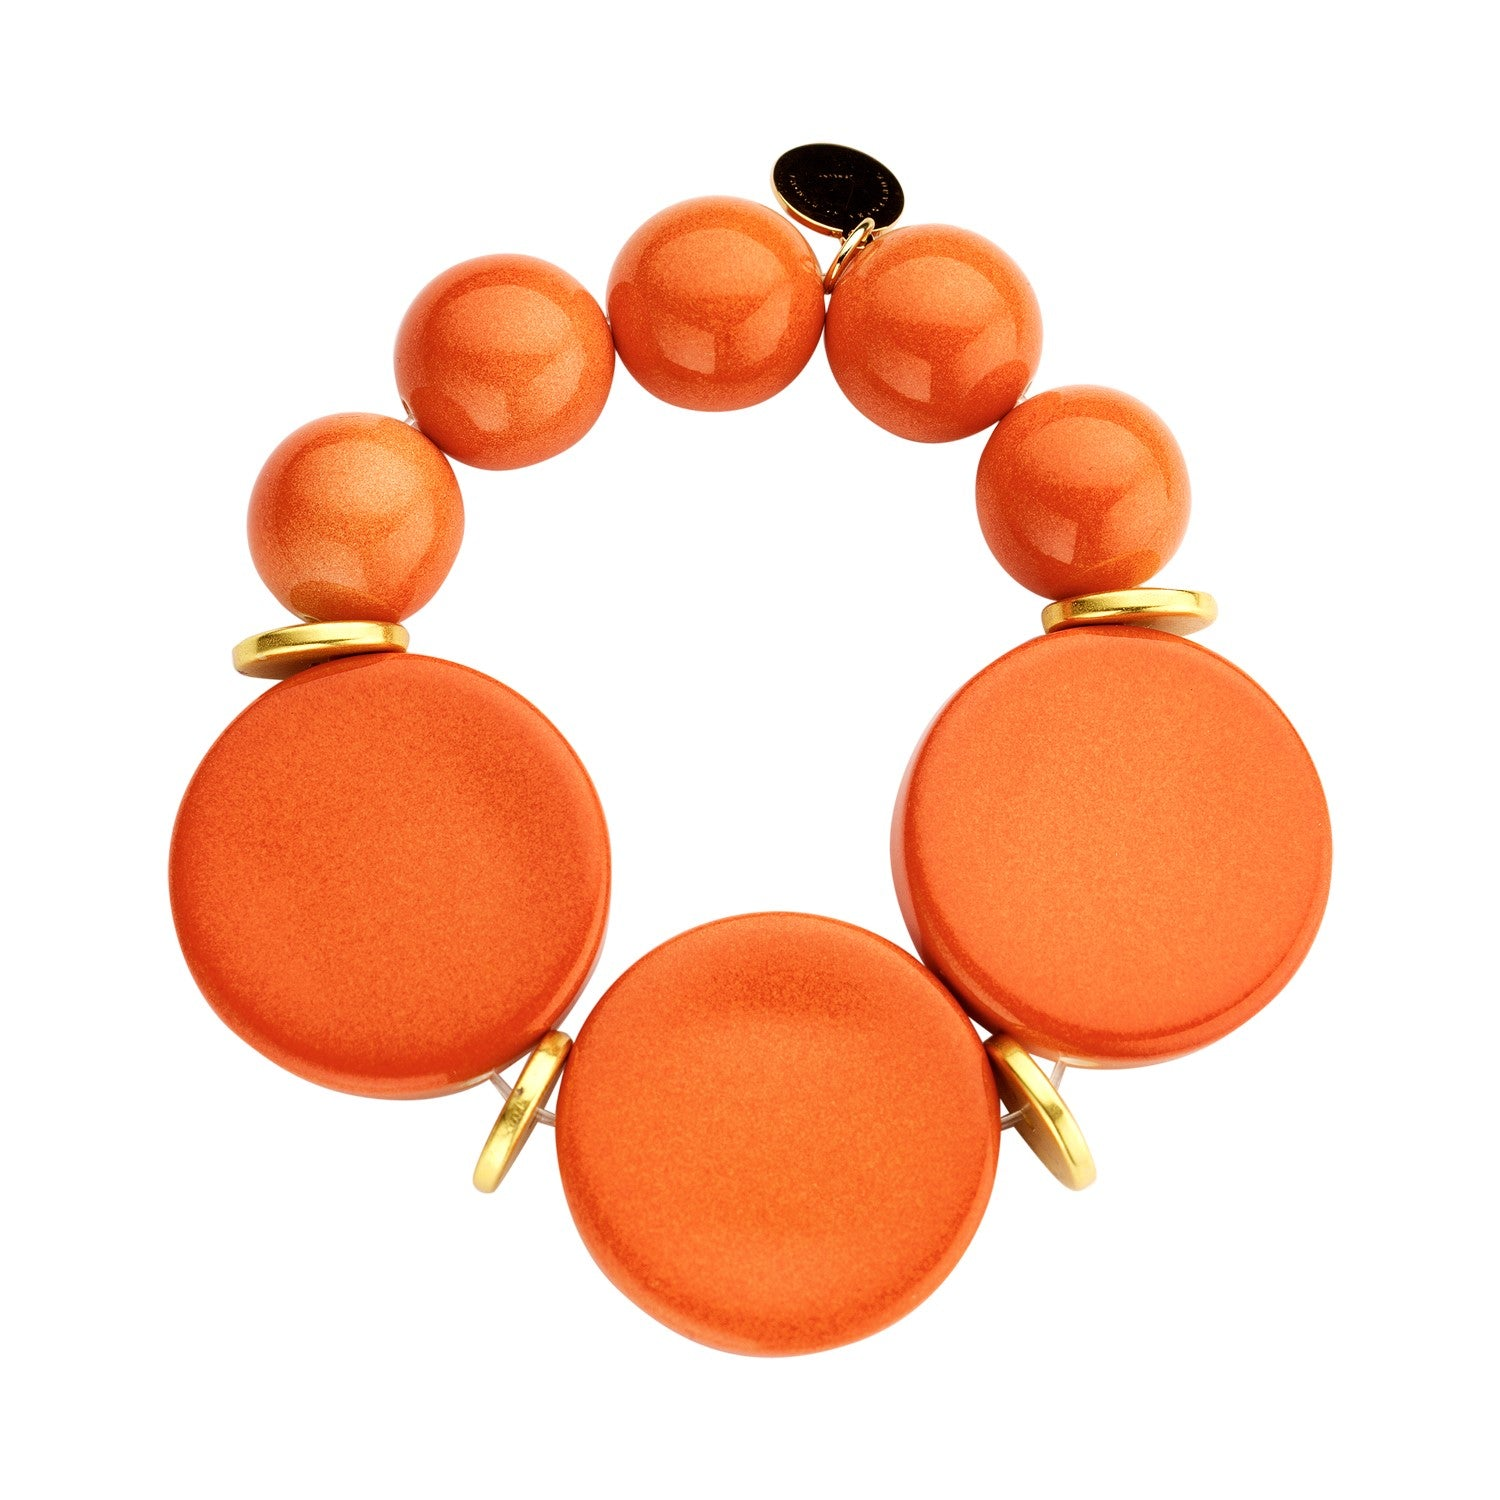 Beaded candy bracelet orange disks - Souvenirs de Pomme